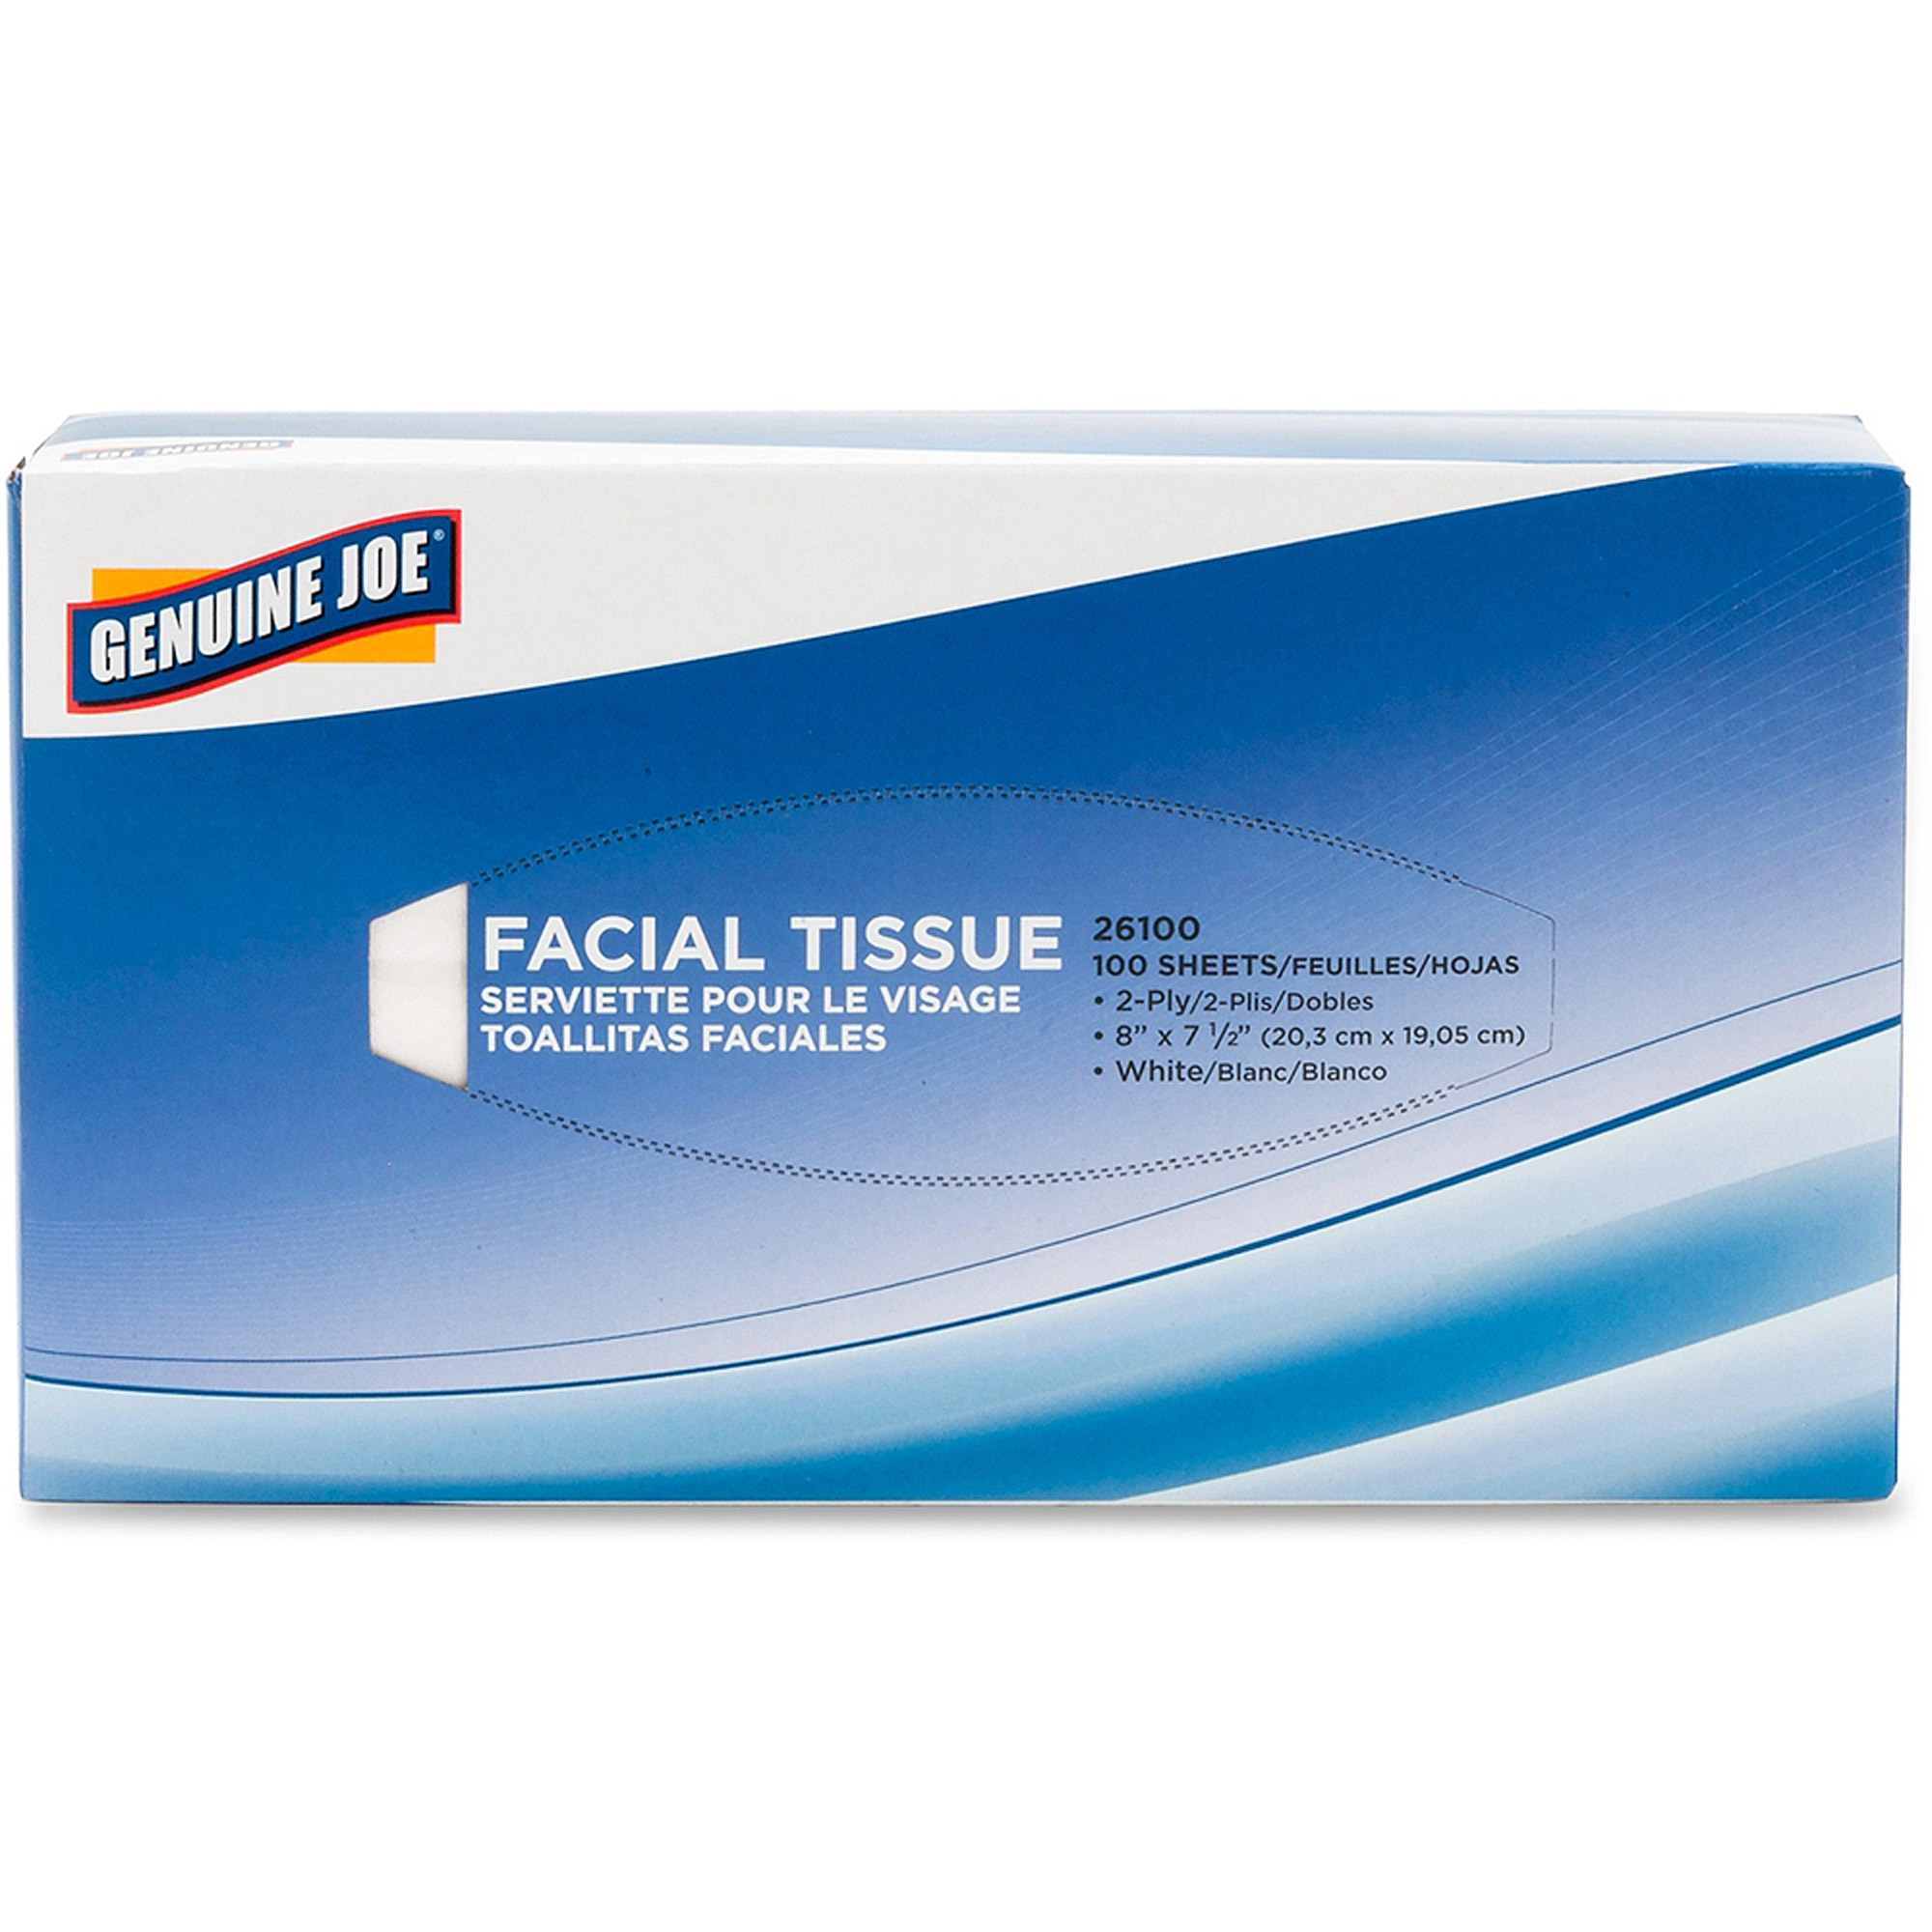 Genuine Joe Facial Tissue, 100 sheets, (Pack of 30)